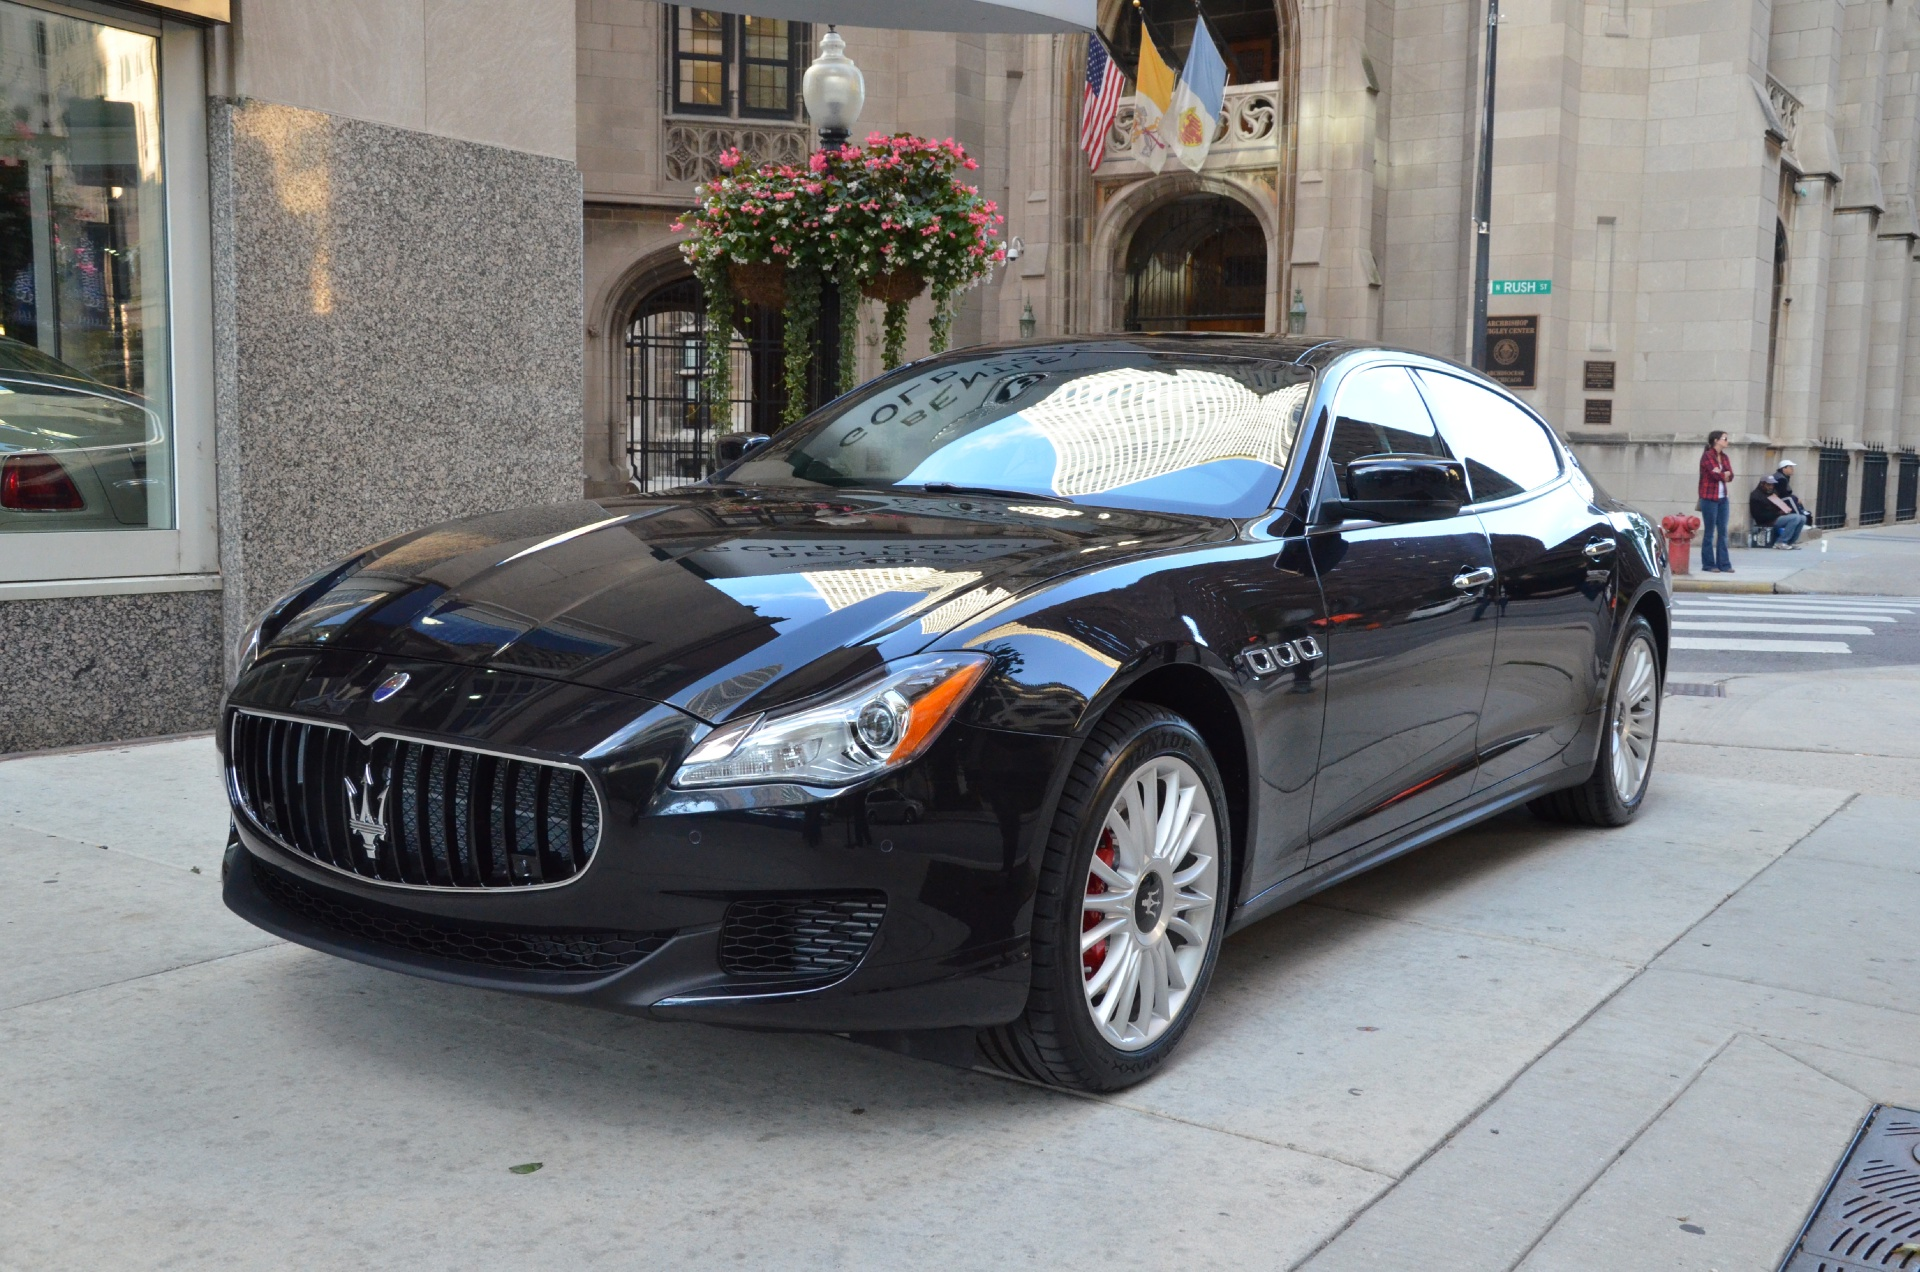 2014 maserati quattroporte s q4 s q4 stock m167 s for sale near chicago il il maserati dealer. Black Bedroom Furniture Sets. Home Design Ideas